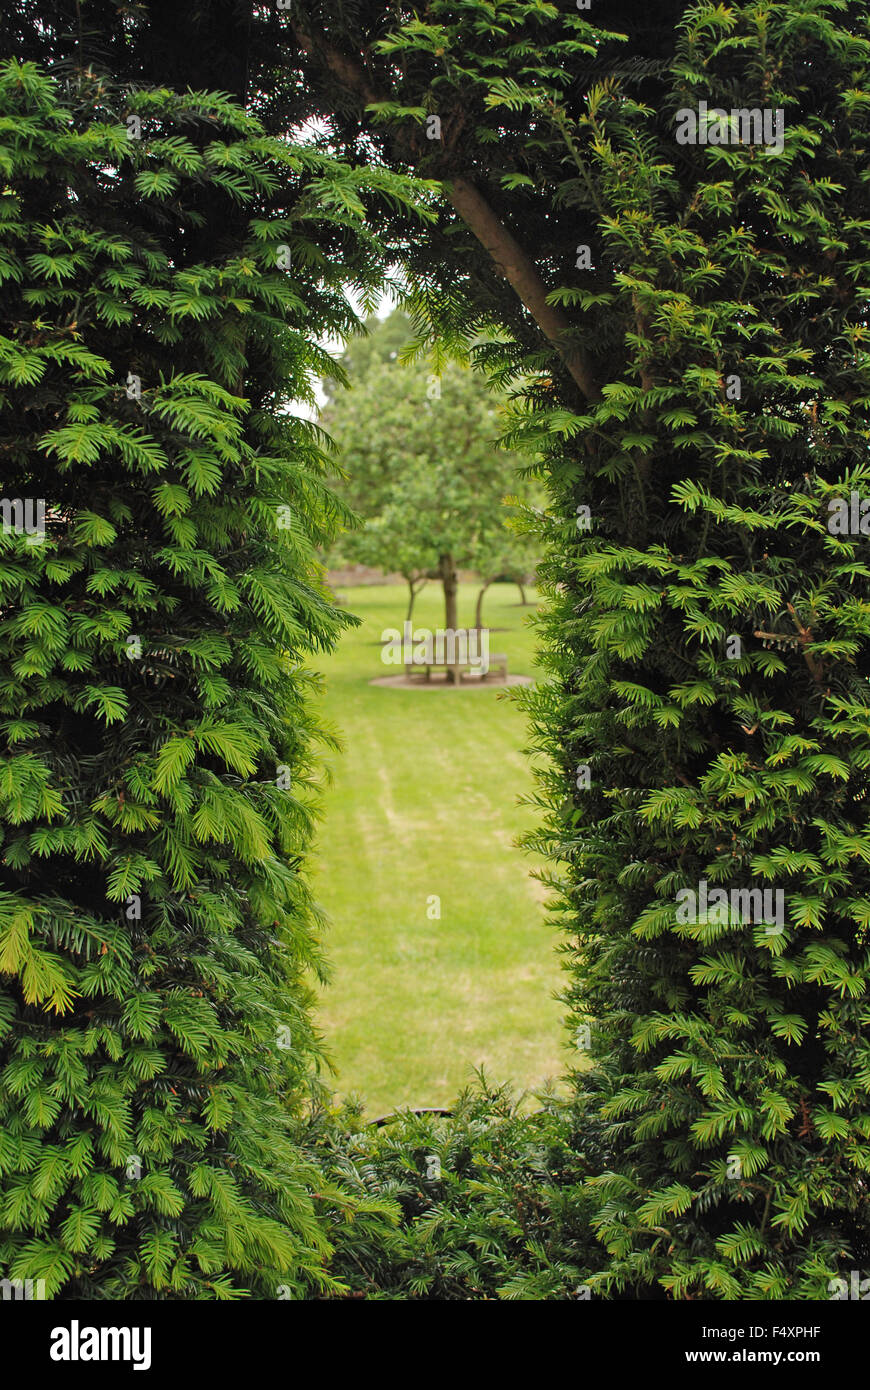 Hedge Cutting Topiary Stock Photos & Hedge Cutting Topiary Stock ...